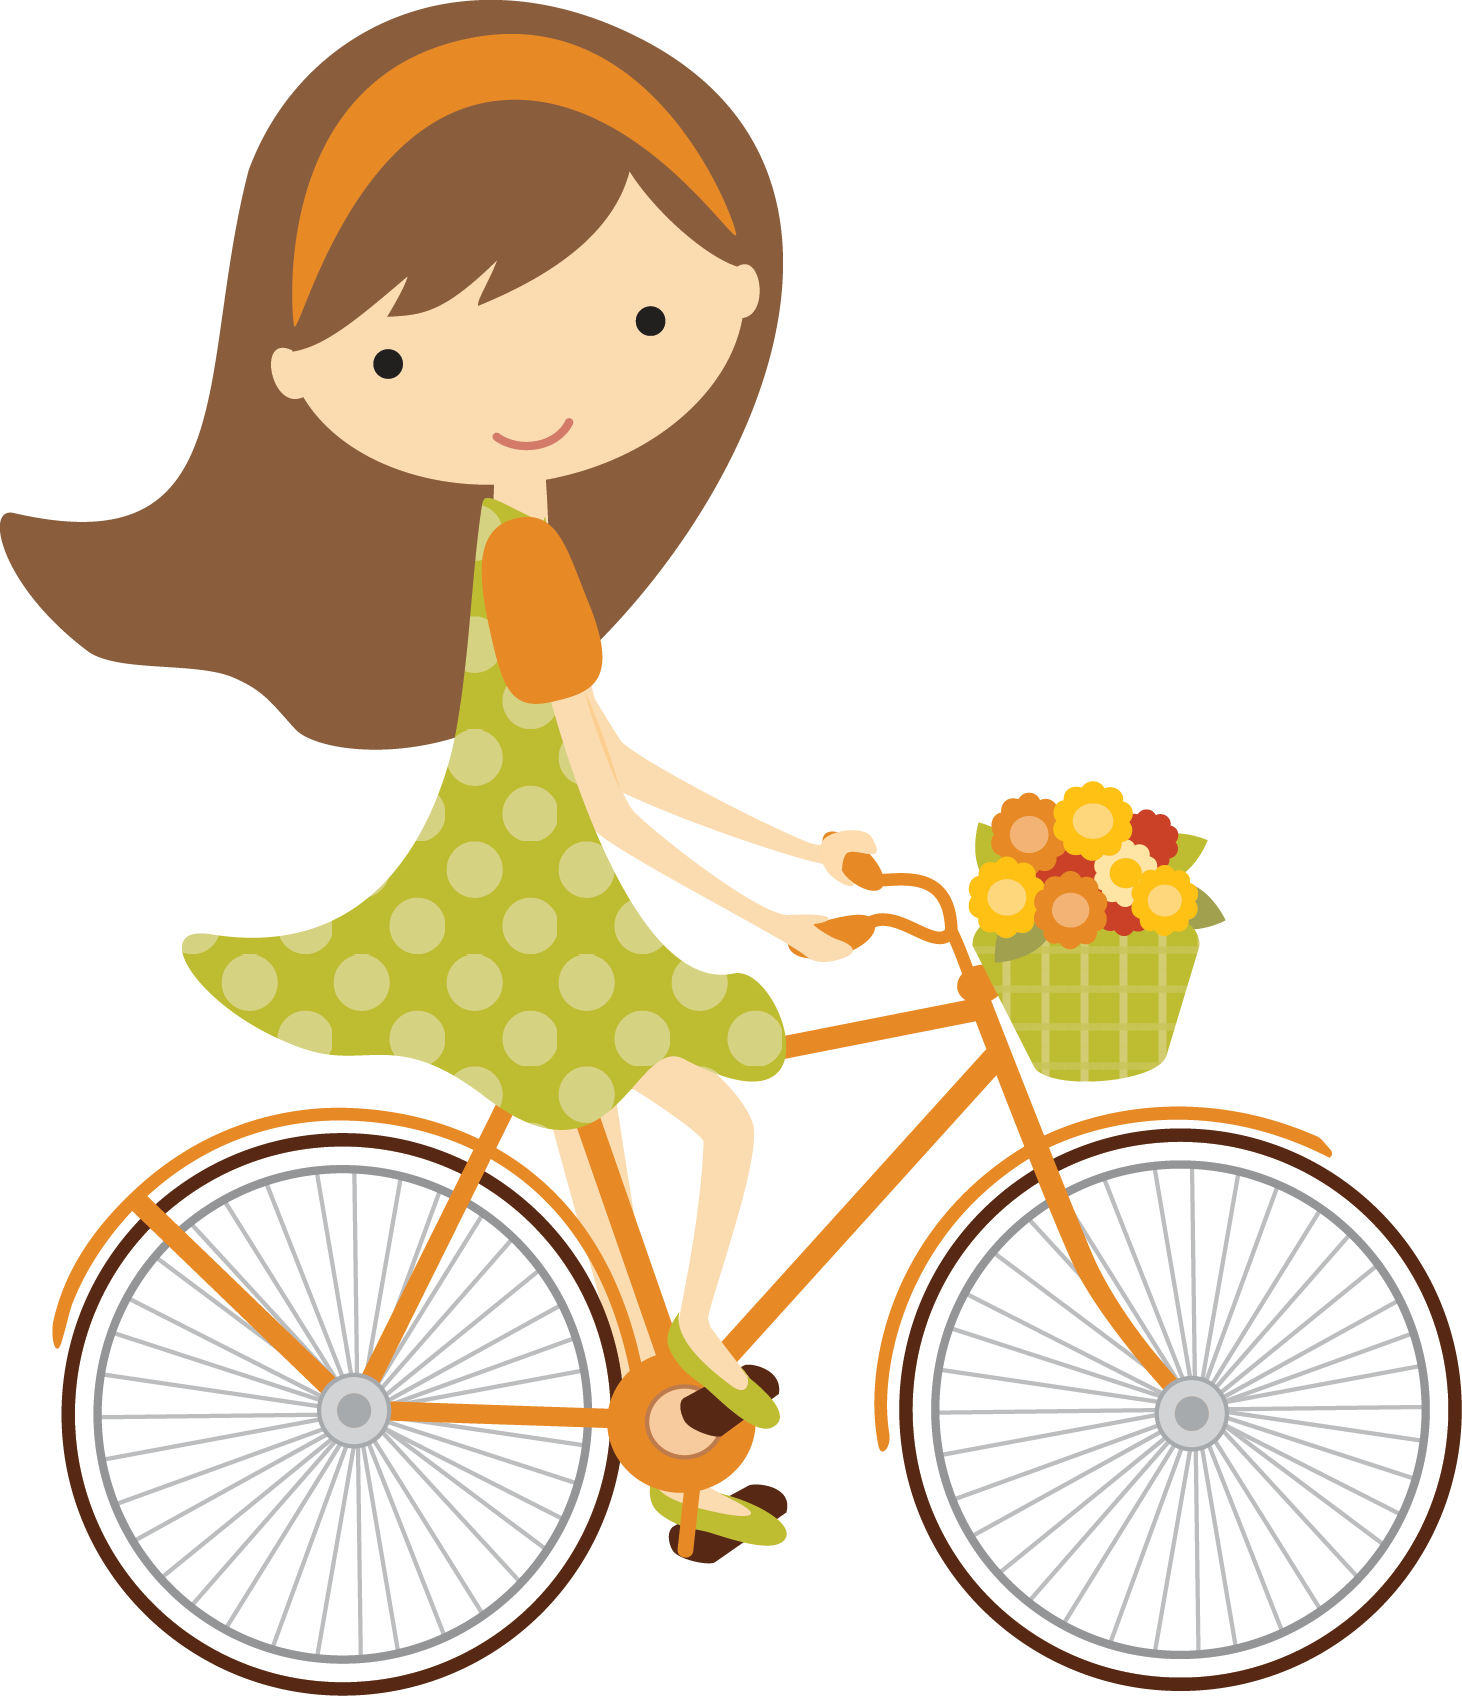 Bicycle cartoon png. Bicicleta fallgirlbrown minus clipart